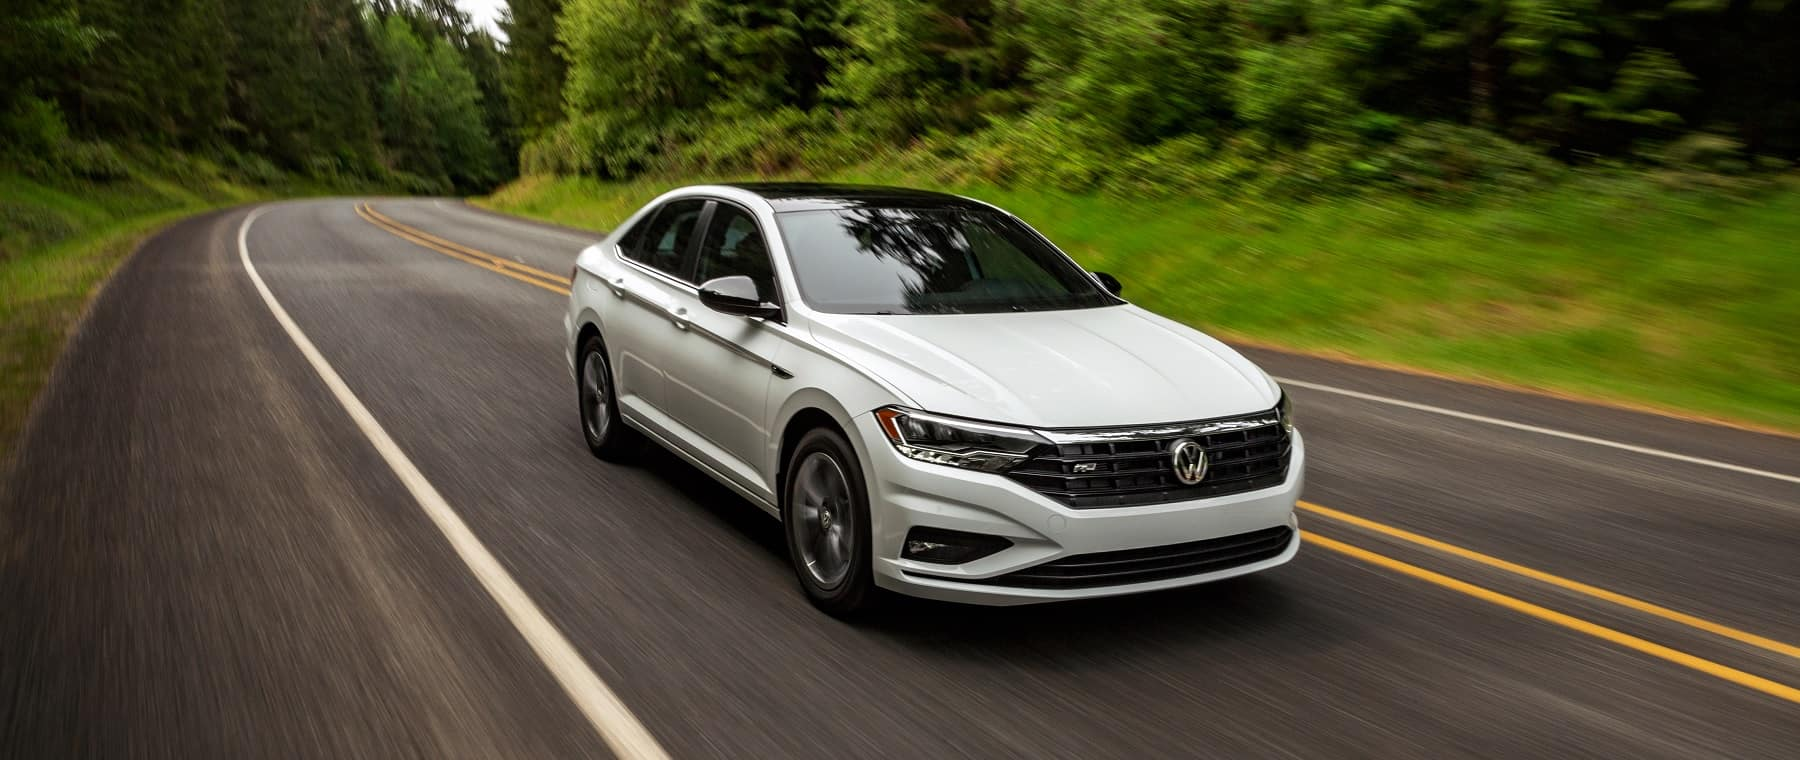 2020 Volkswagen Jetta vs. 2020 Honda Civic